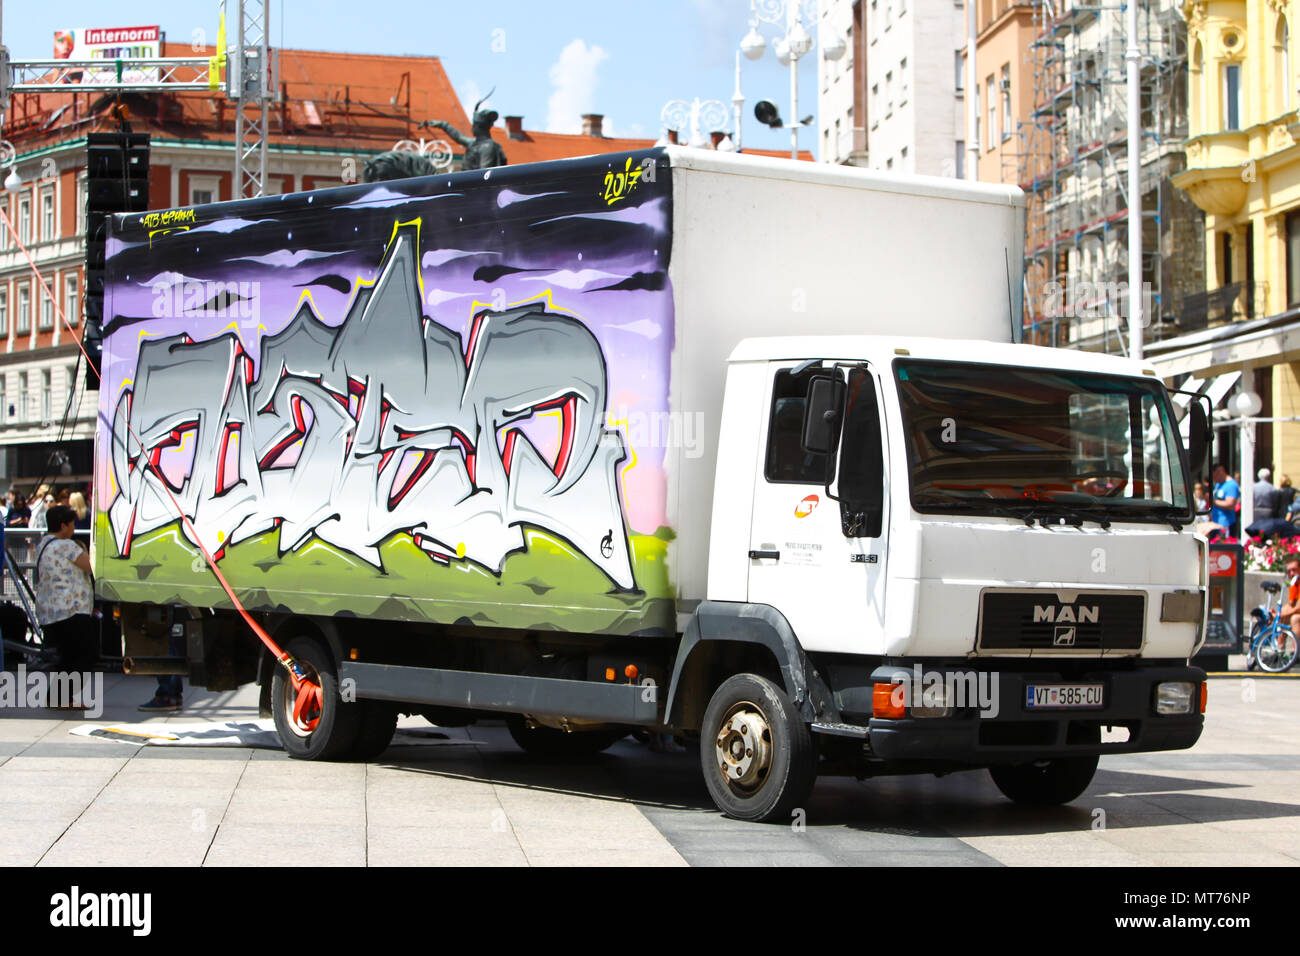 ZAGREB, CROATIA - MAY 19, 2018 : A view of graffiti on a truck parked on Jelacic square in Zagreb, Croatia. Stock Photo